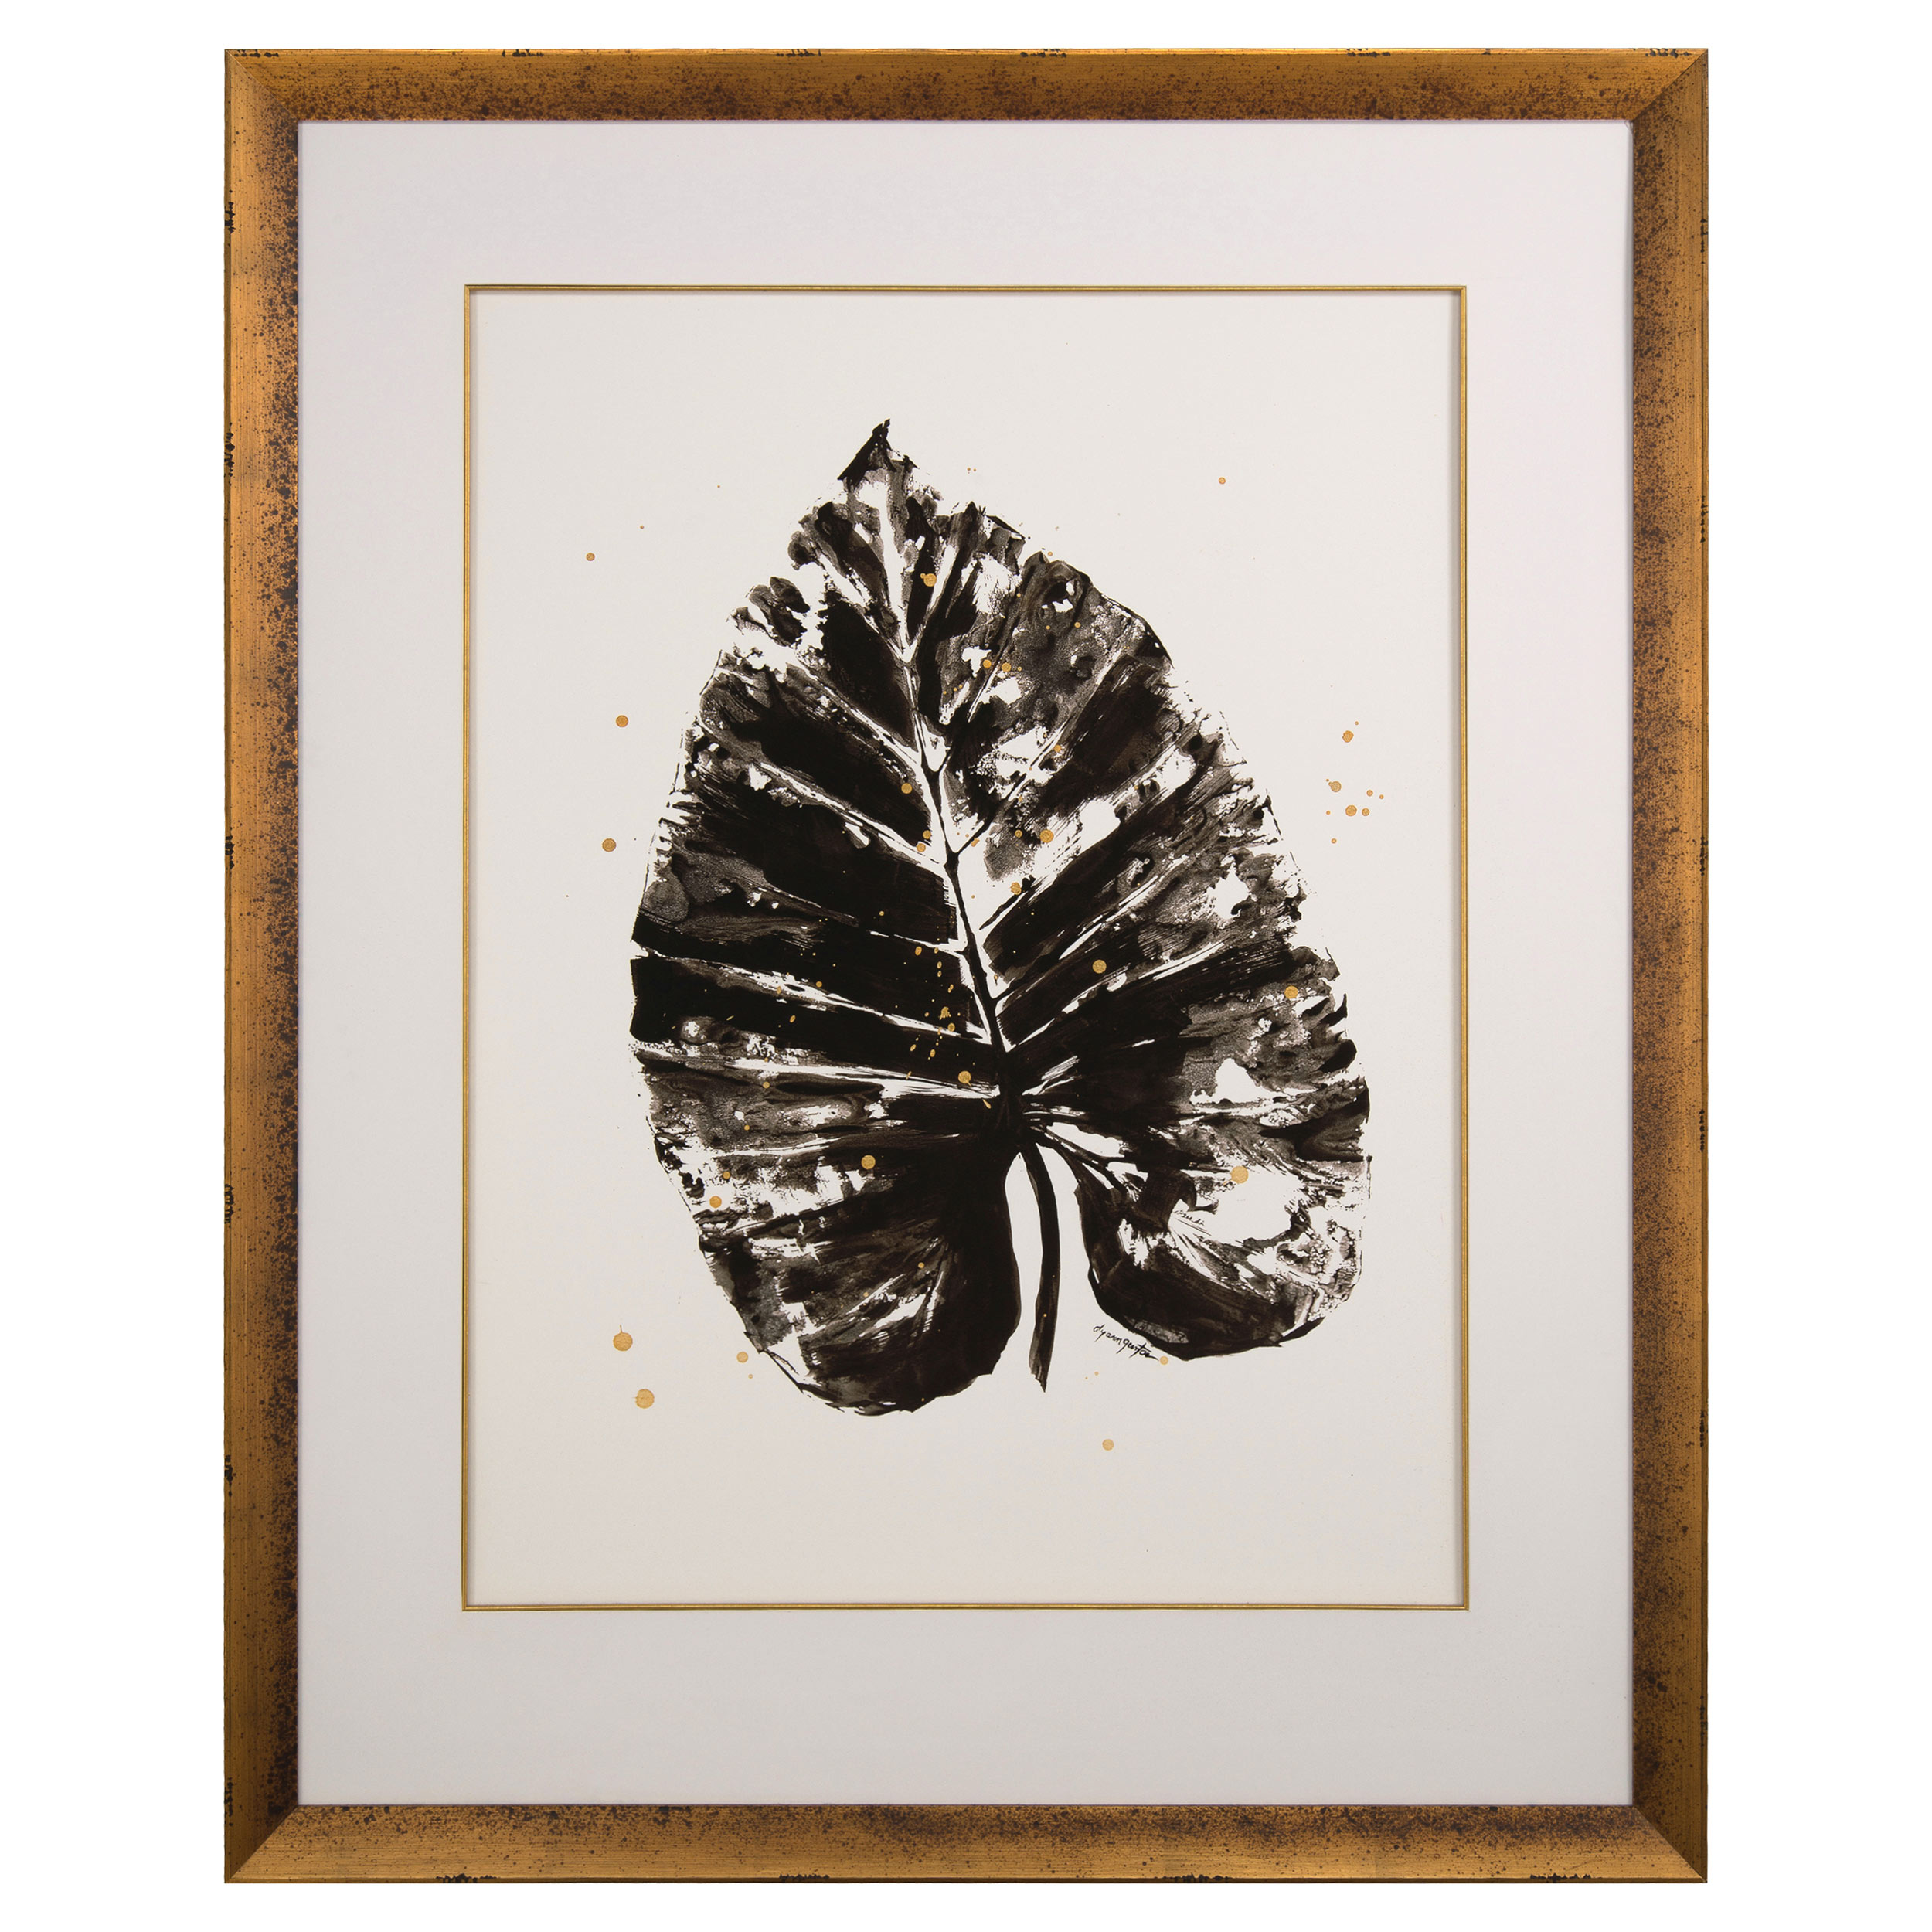 Elephant Ear Gold Frame Pressed Black Print - I